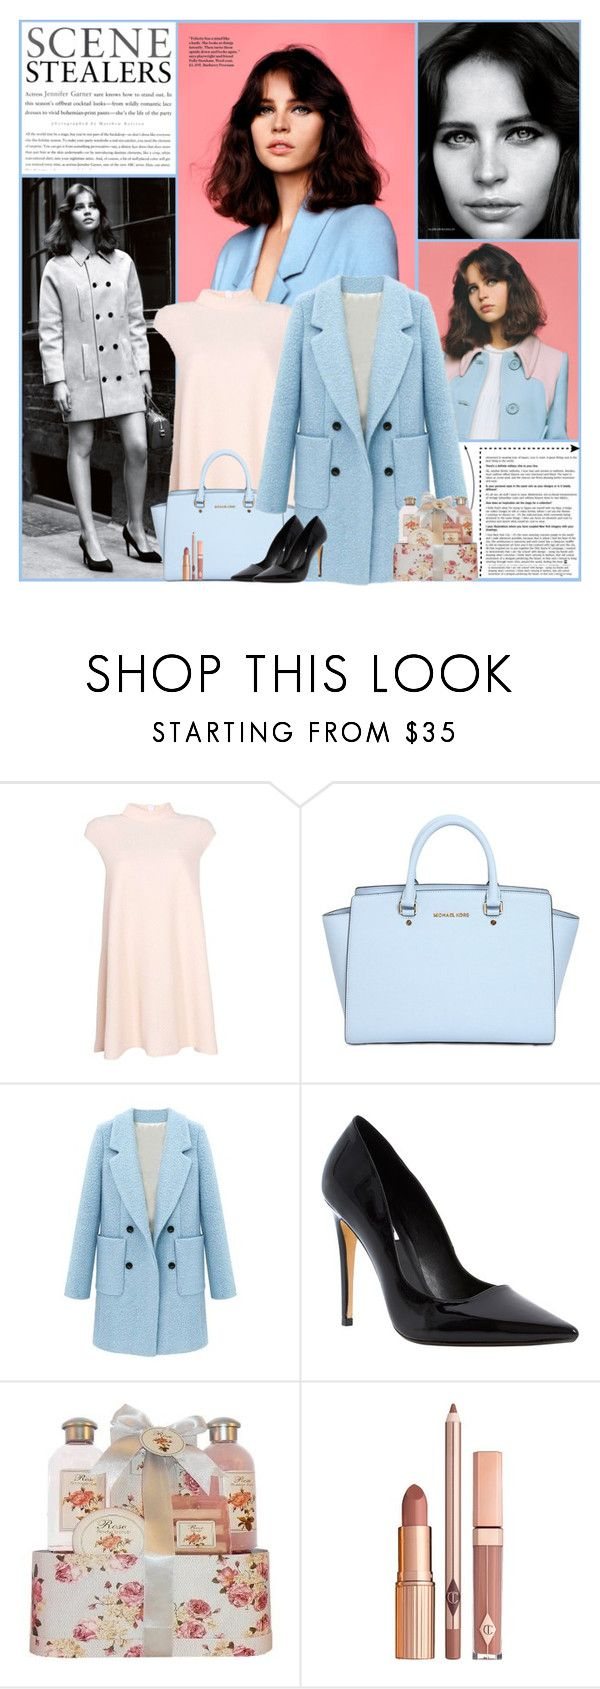 """Felicity Jones"" by kittyfantastica ❤ liked on Polyvore featuring Alasdair, Boohoo, MICHAEL Michael Kors and Dune"